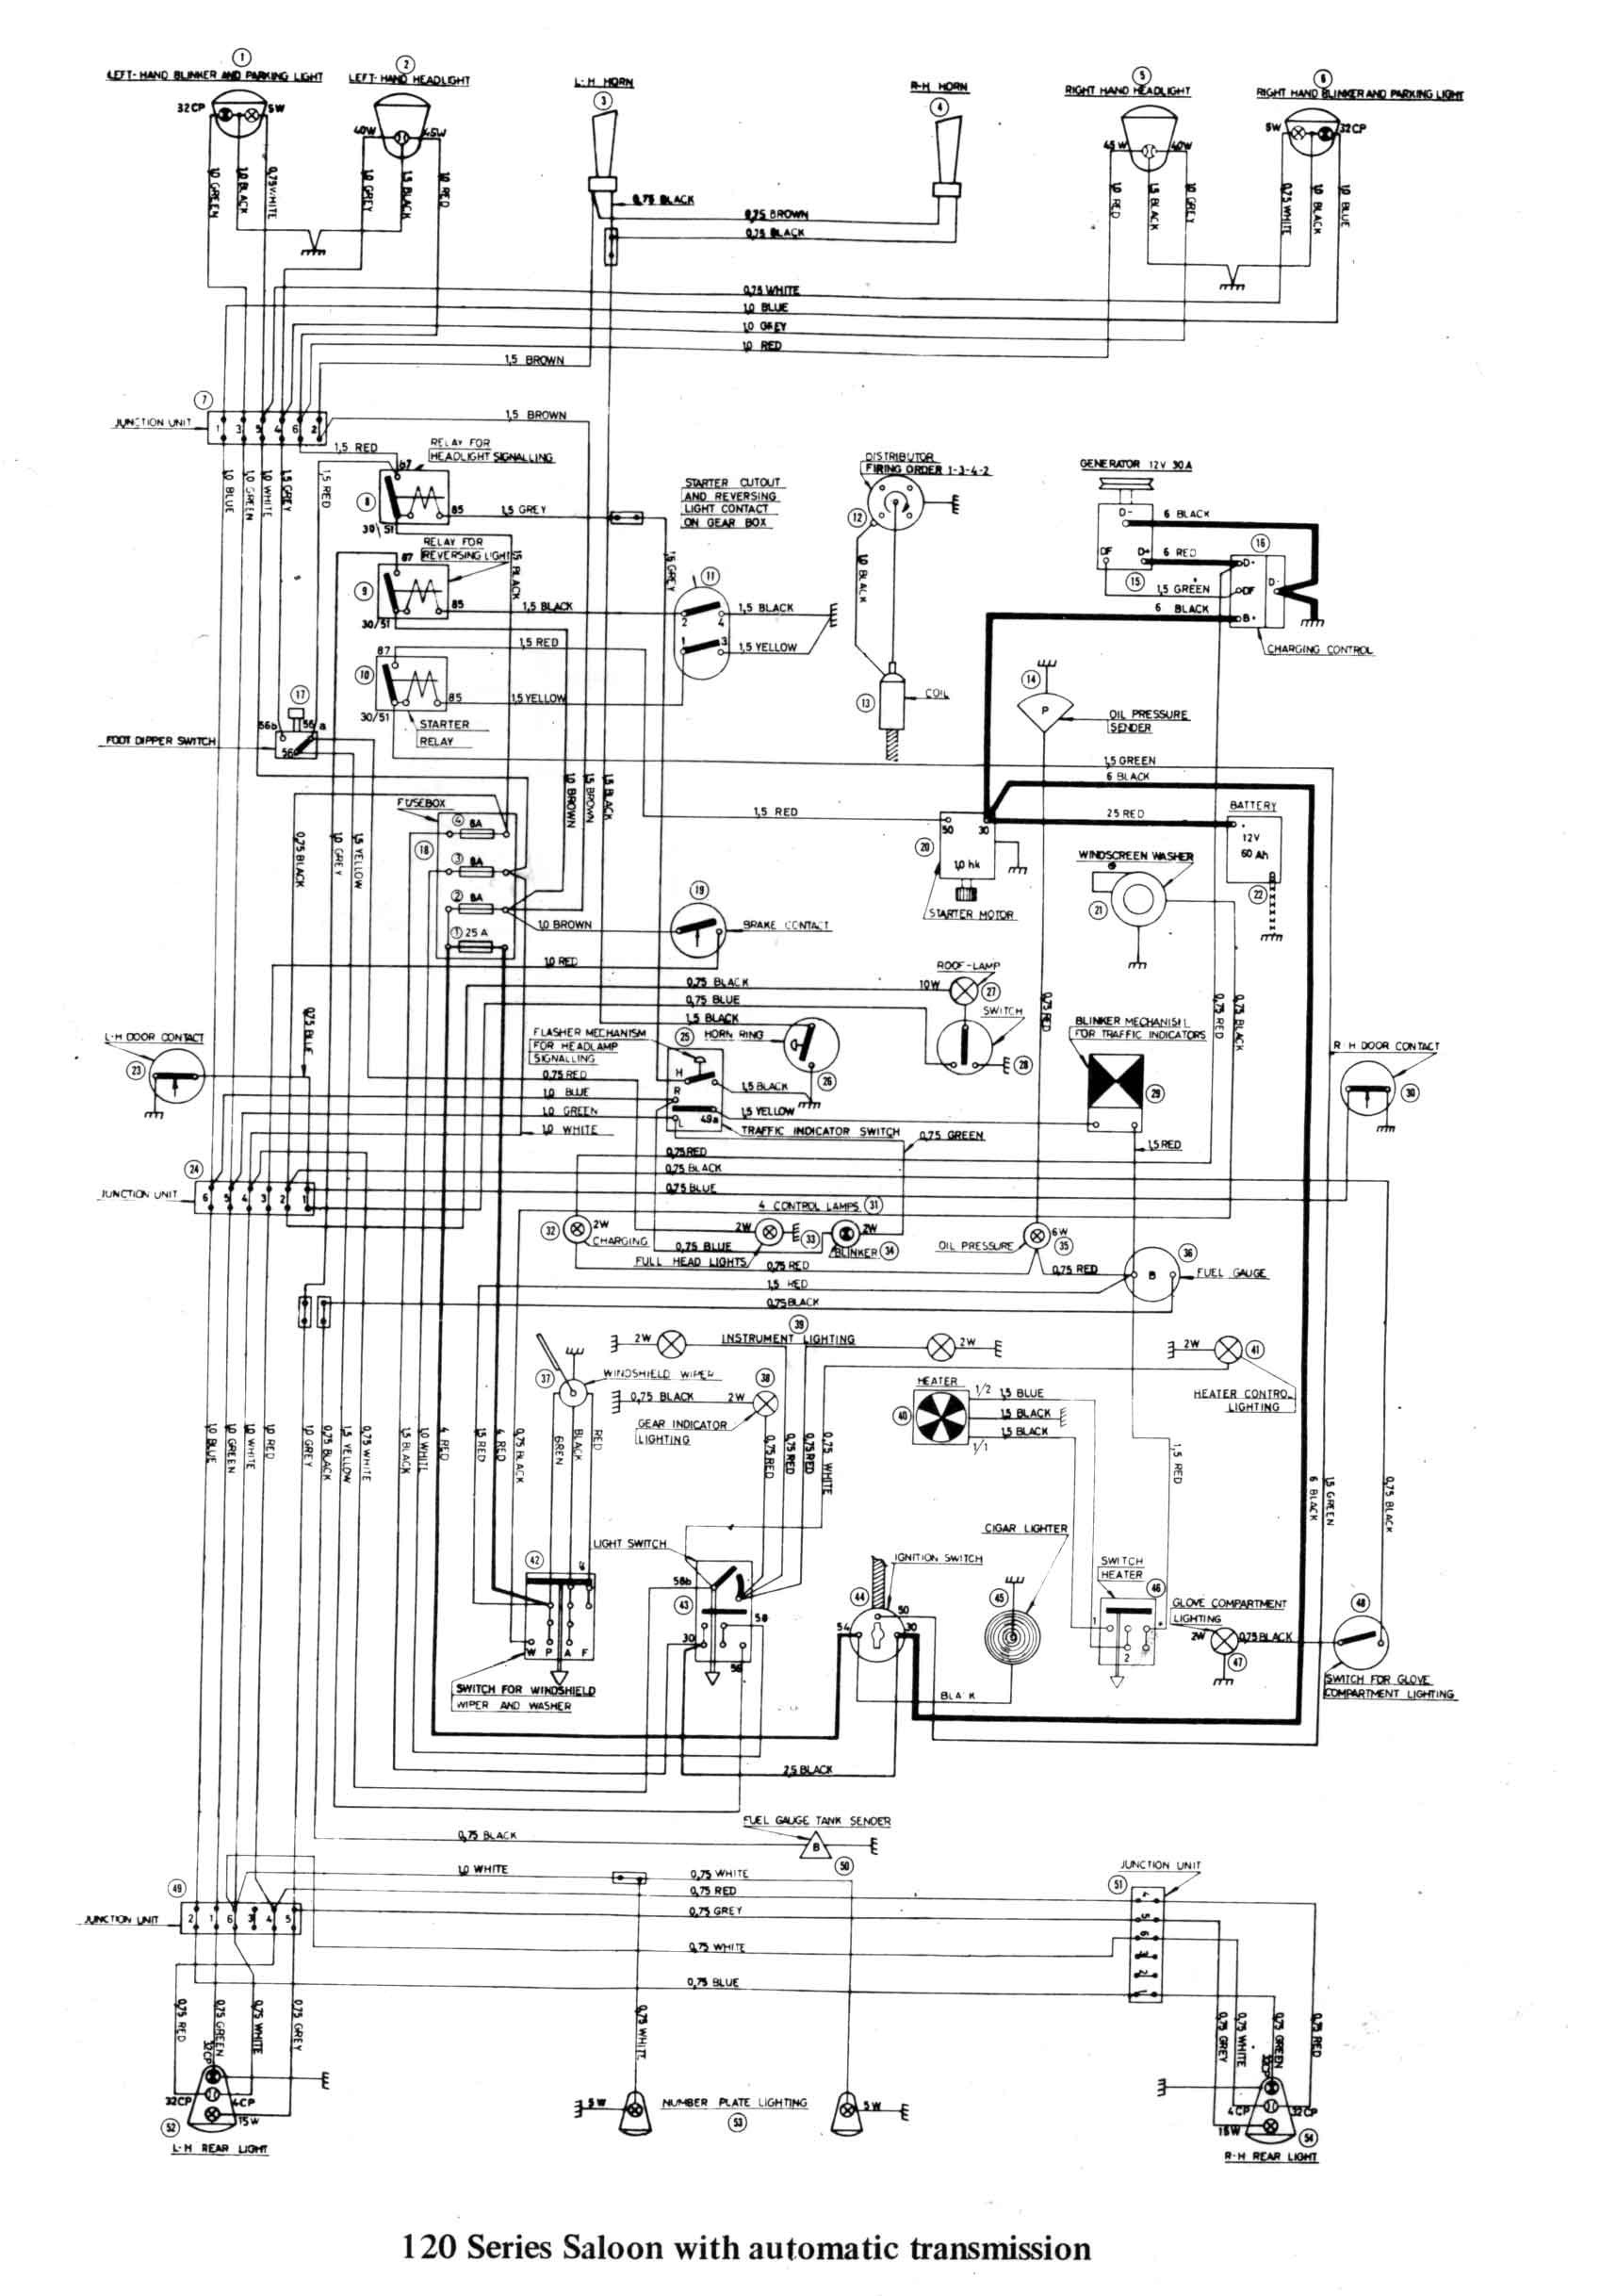 Ford F150 Tail Light Wiring Diagram Volvo Lights Wiring Diagram Custom Wiring Diagram • Of Ford F150 Tail Light Wiring Diagram Wiring Diagram for Automotive Lights New Stop Turn Tail Light Wiring